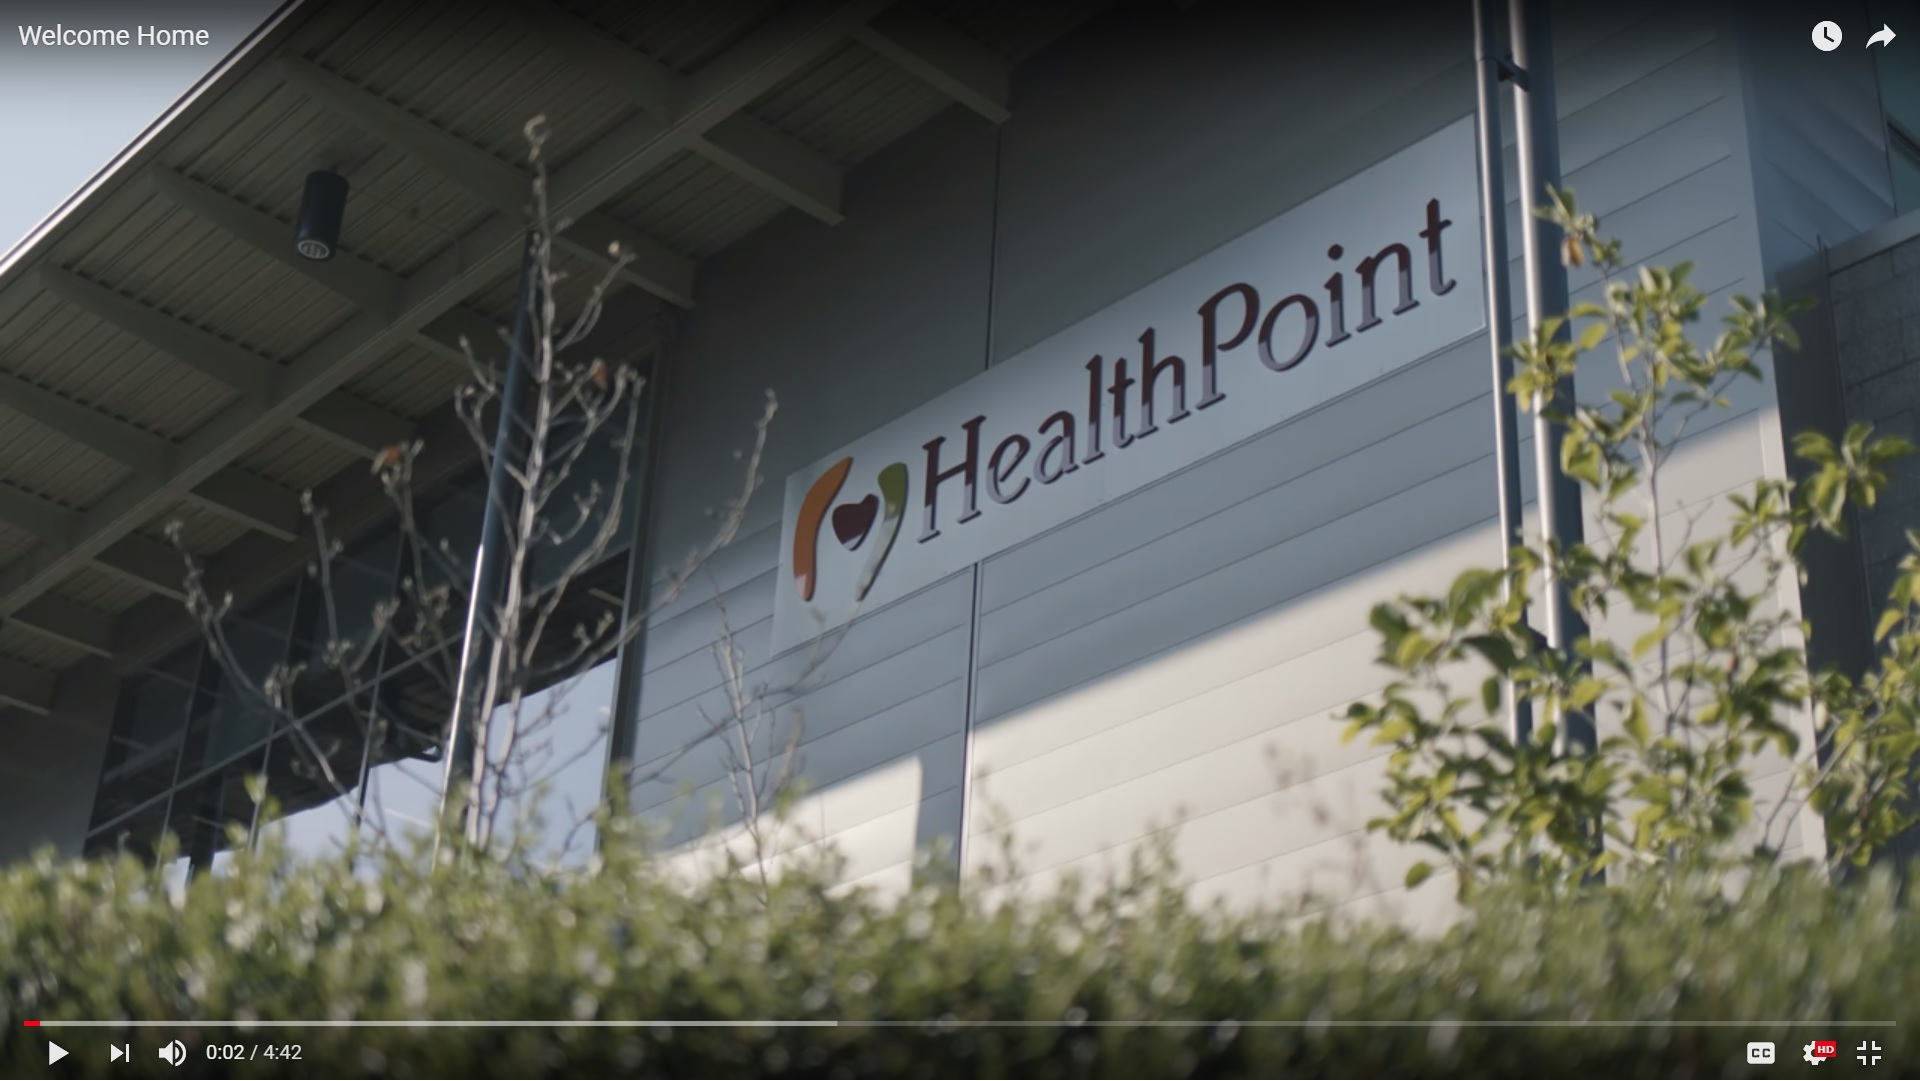 Healthpoint National Psychology Training Consortium